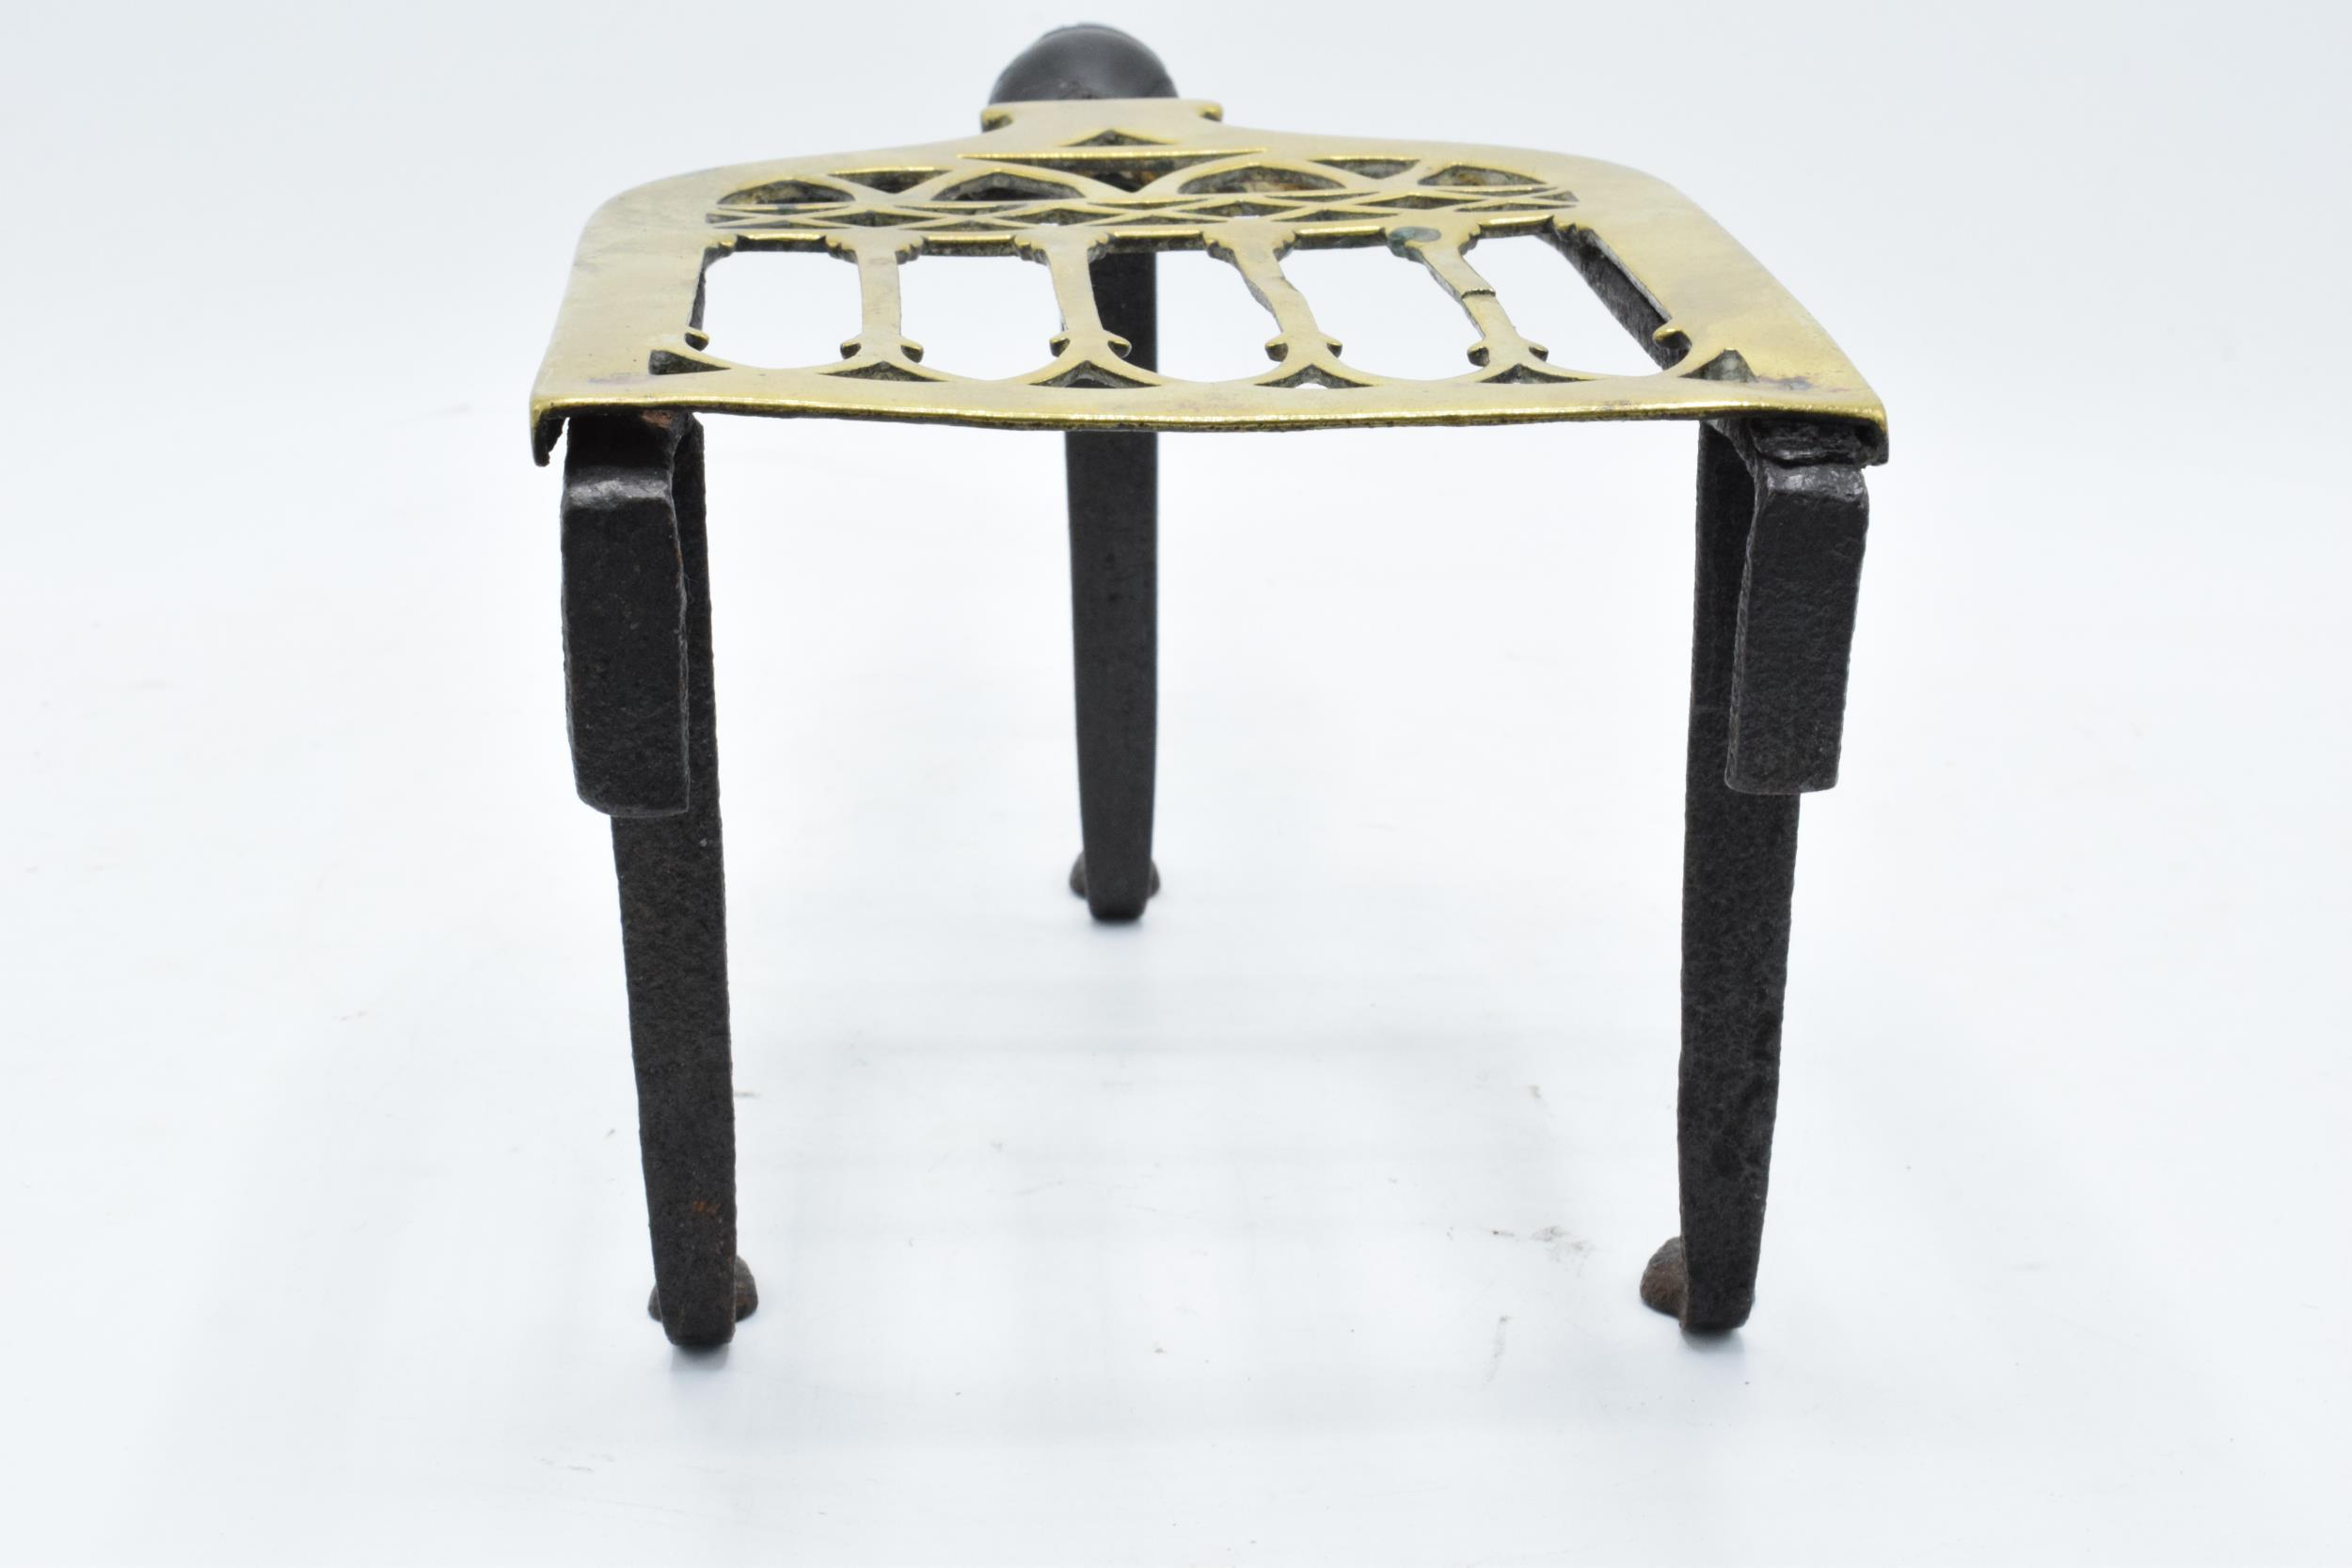 Victorian brass and iron trivet with wooden handle (some chipping to wood). - Image 4 of 6